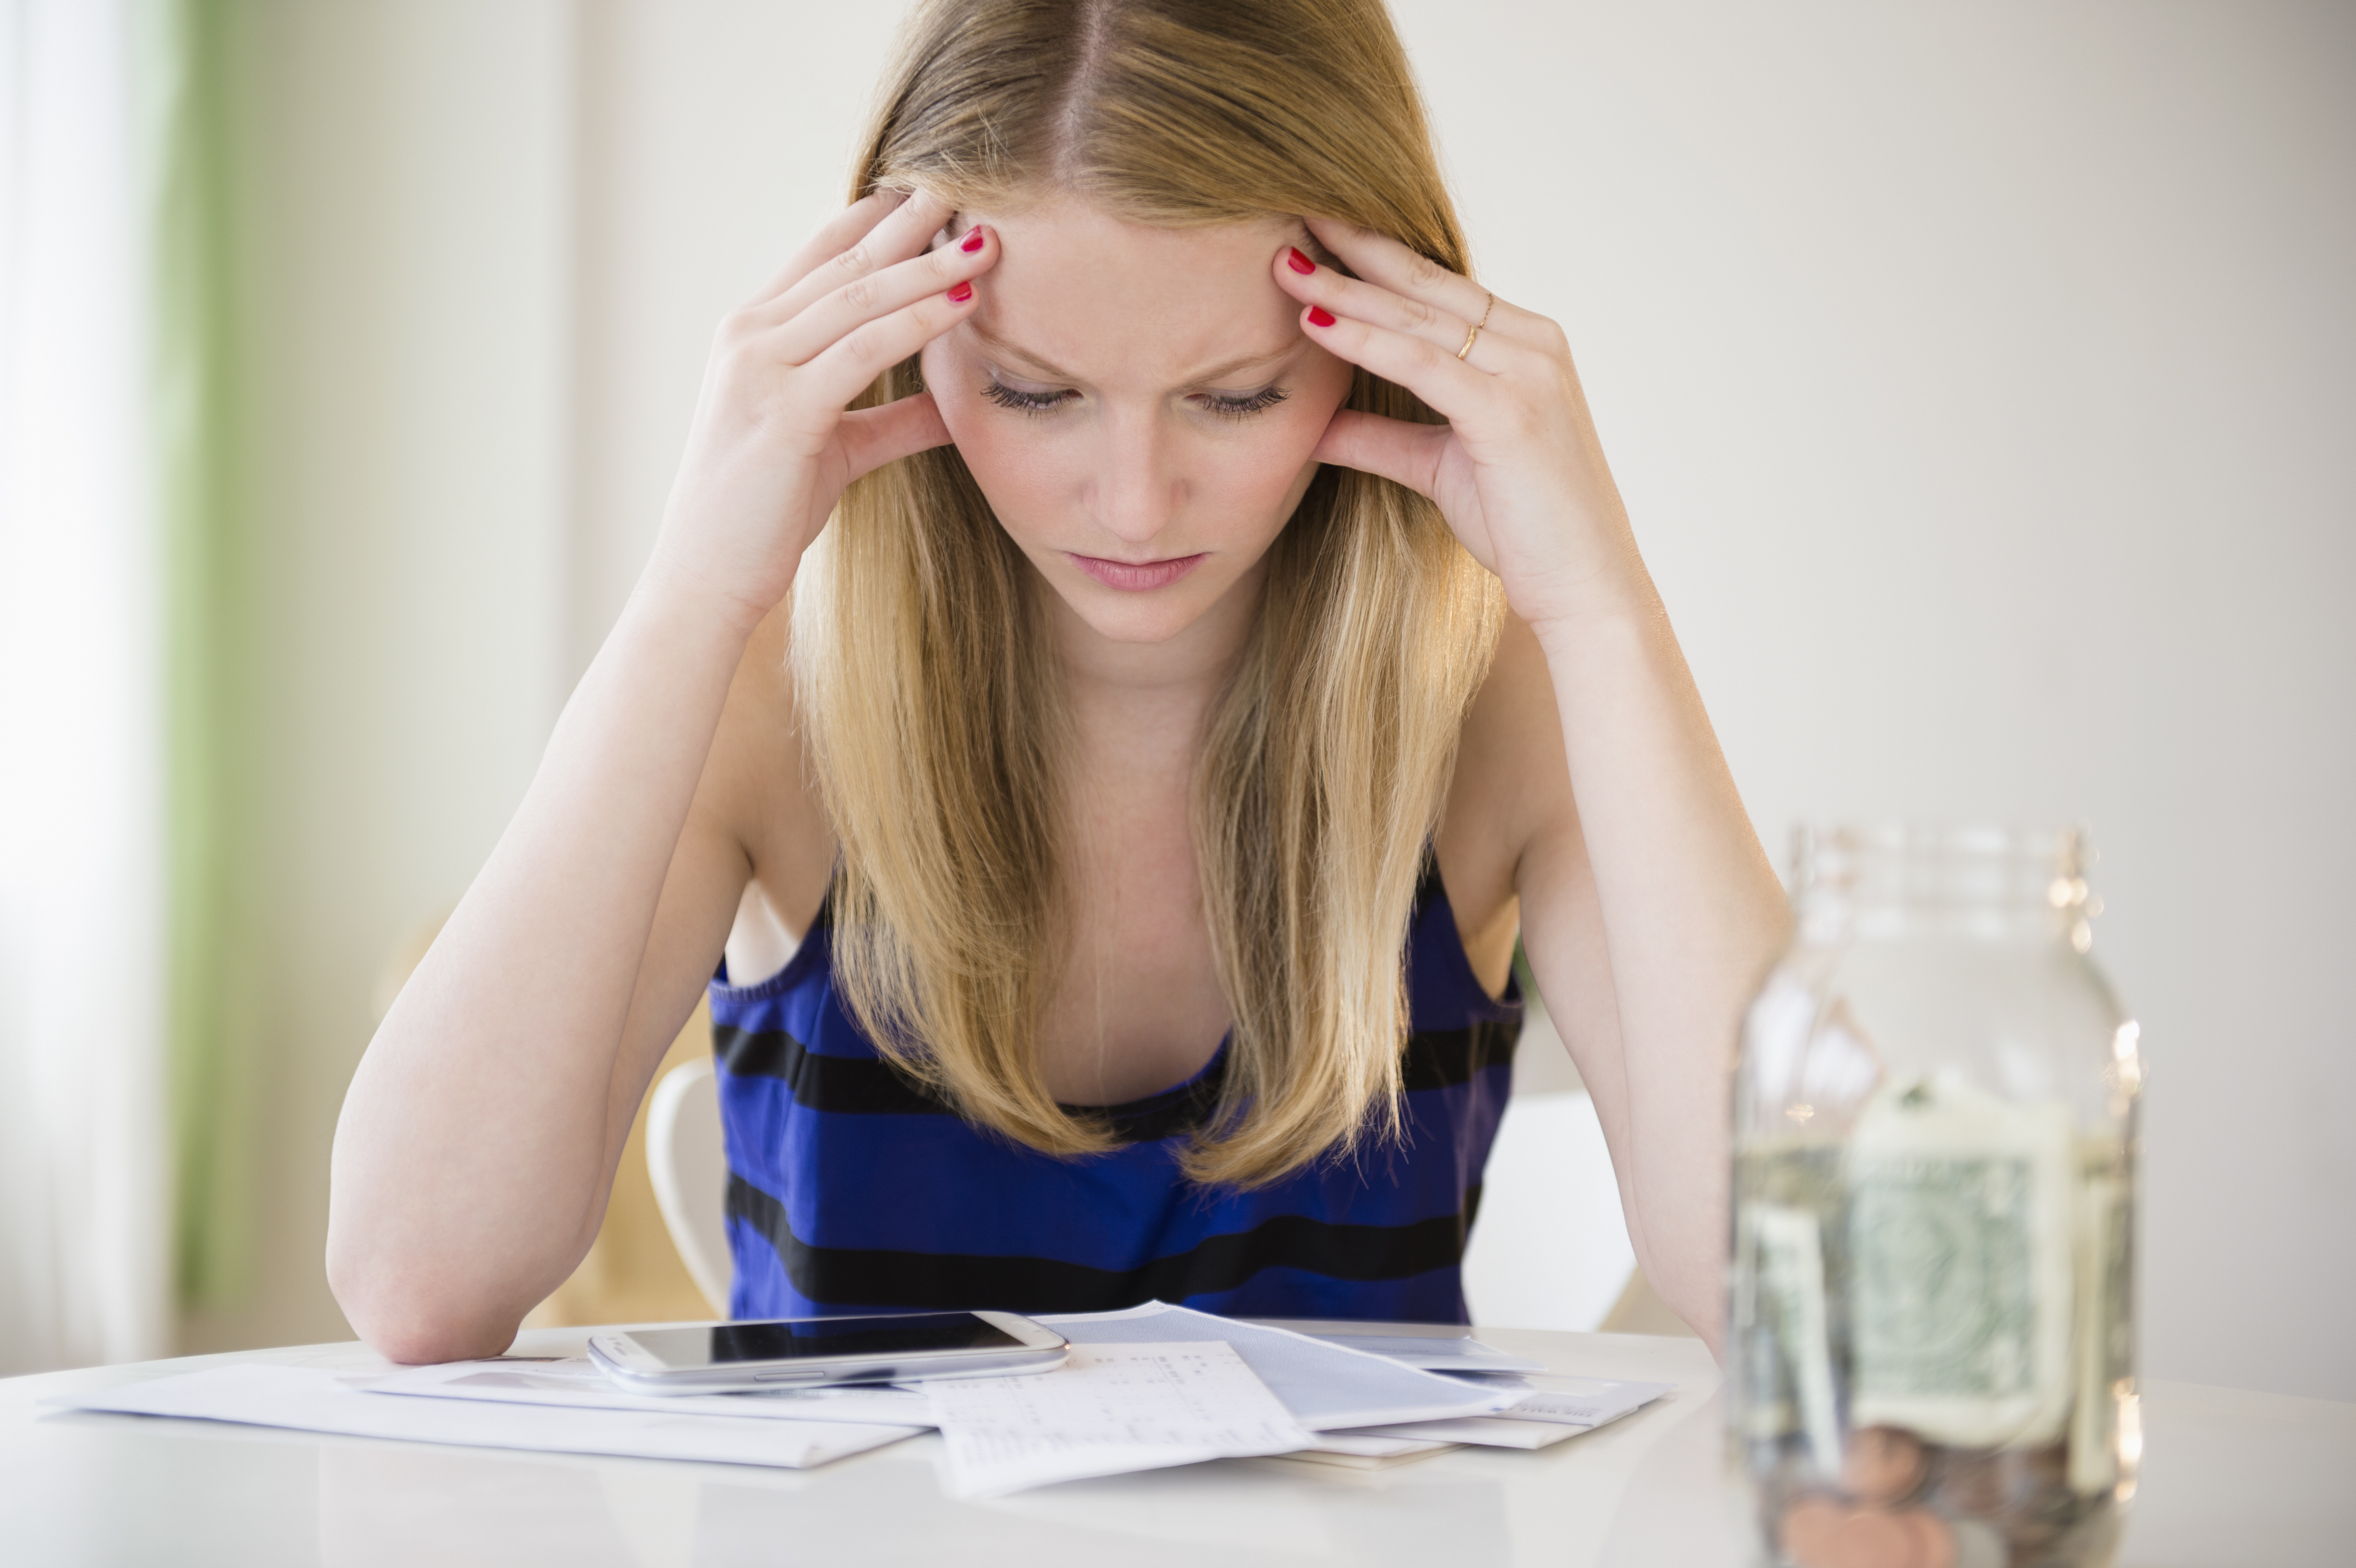 Student Loan Mistakes That Could Hurt Your Financial Future